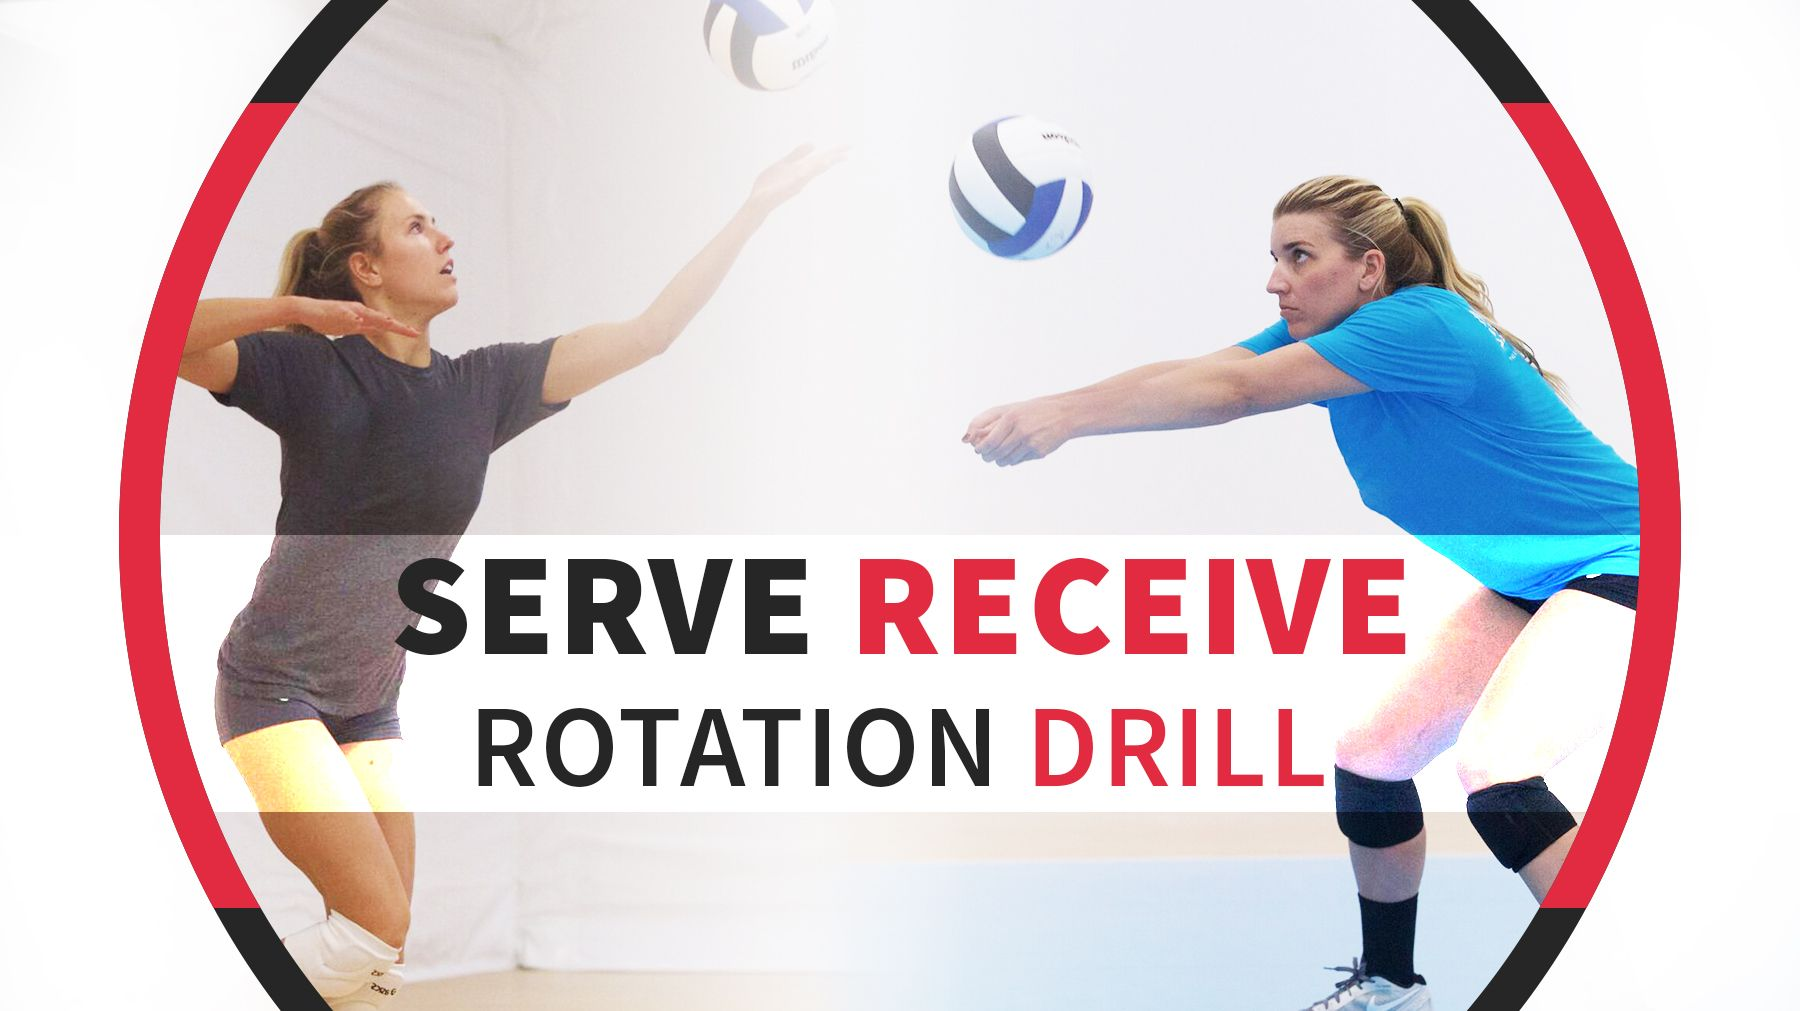 Serve Receive Rotation Drill The Art Of Coaching Volleyball Coaching Volleyball Volleyball Training Volleyball Drills